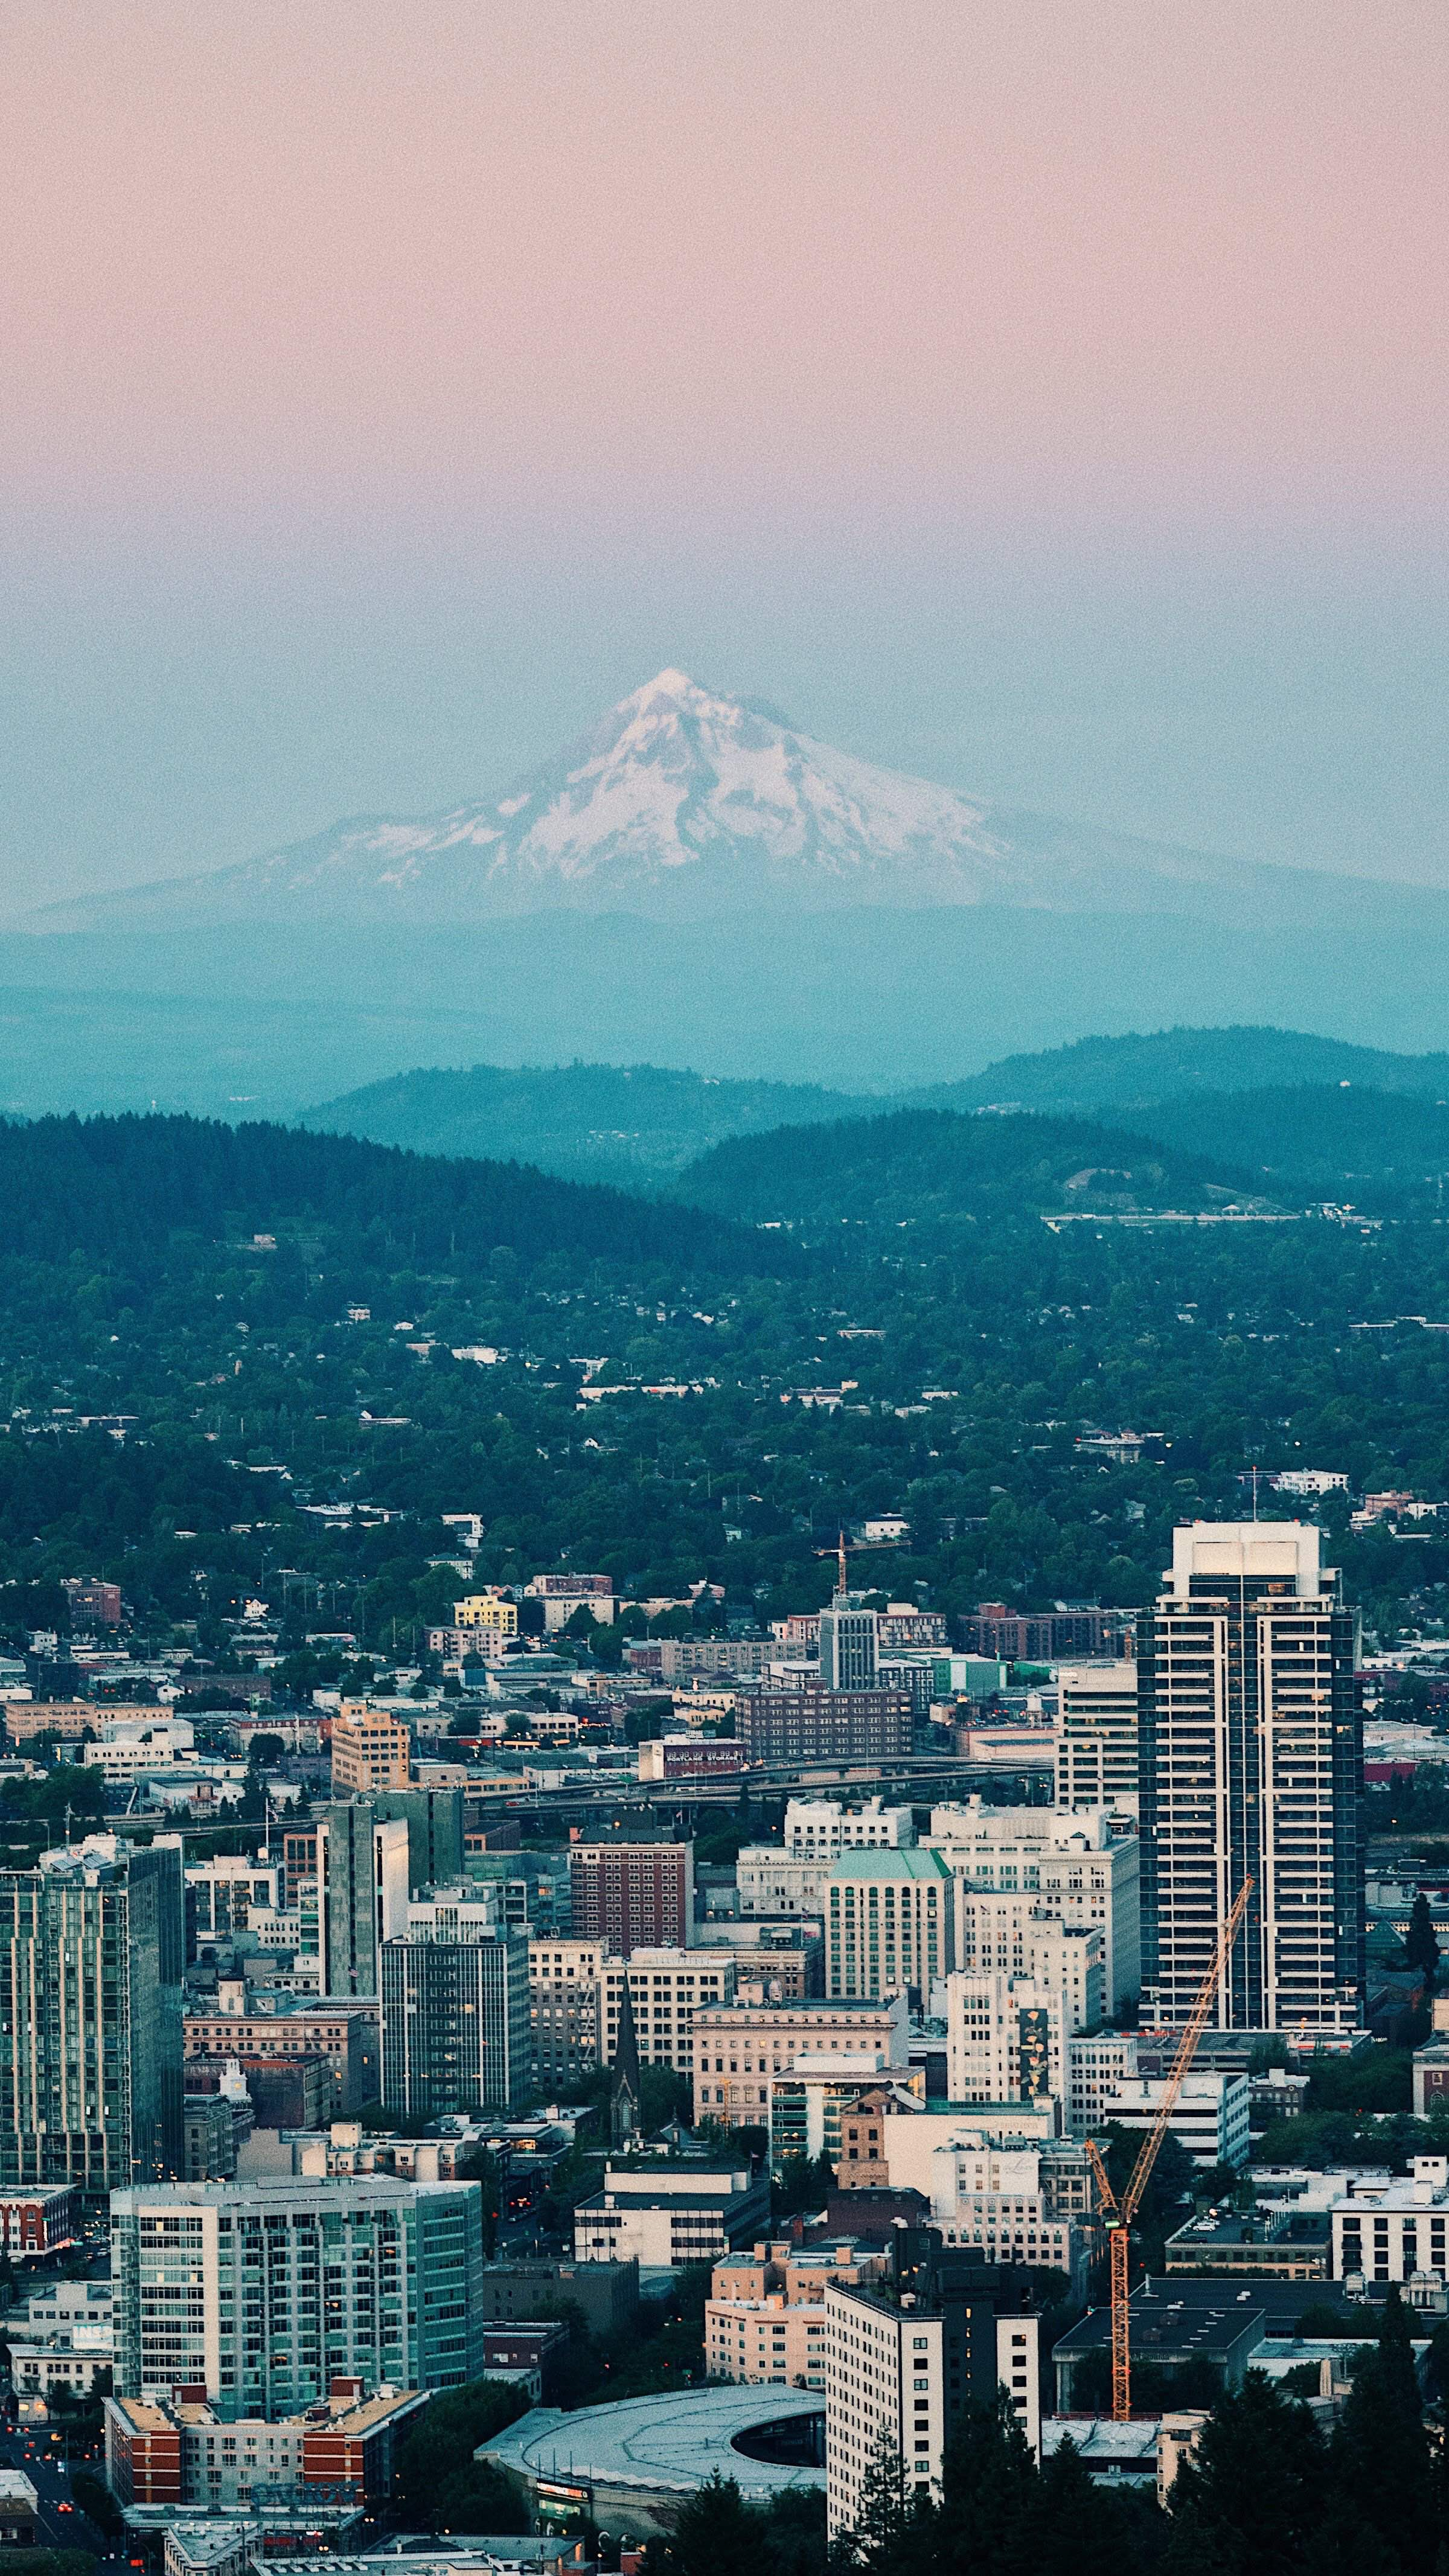 image of housing and buildings of downtown Portland, with Mount Hood in background. Photo by Umit Aslan on Unsplash.